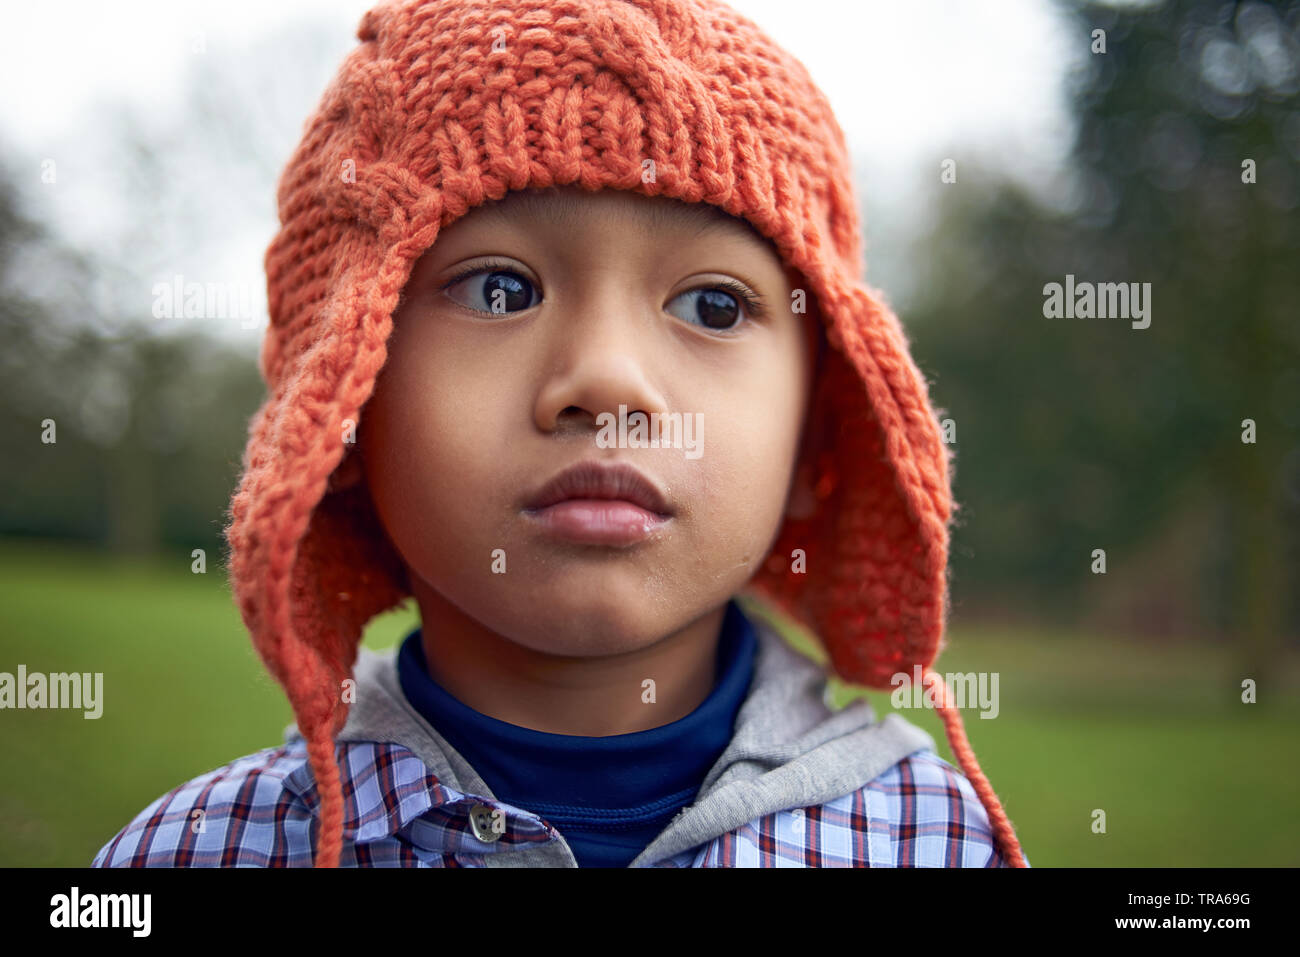 Adorable little Asian boy with big brown eyes wearing a wooley hat in a park in autumn - Stock Image